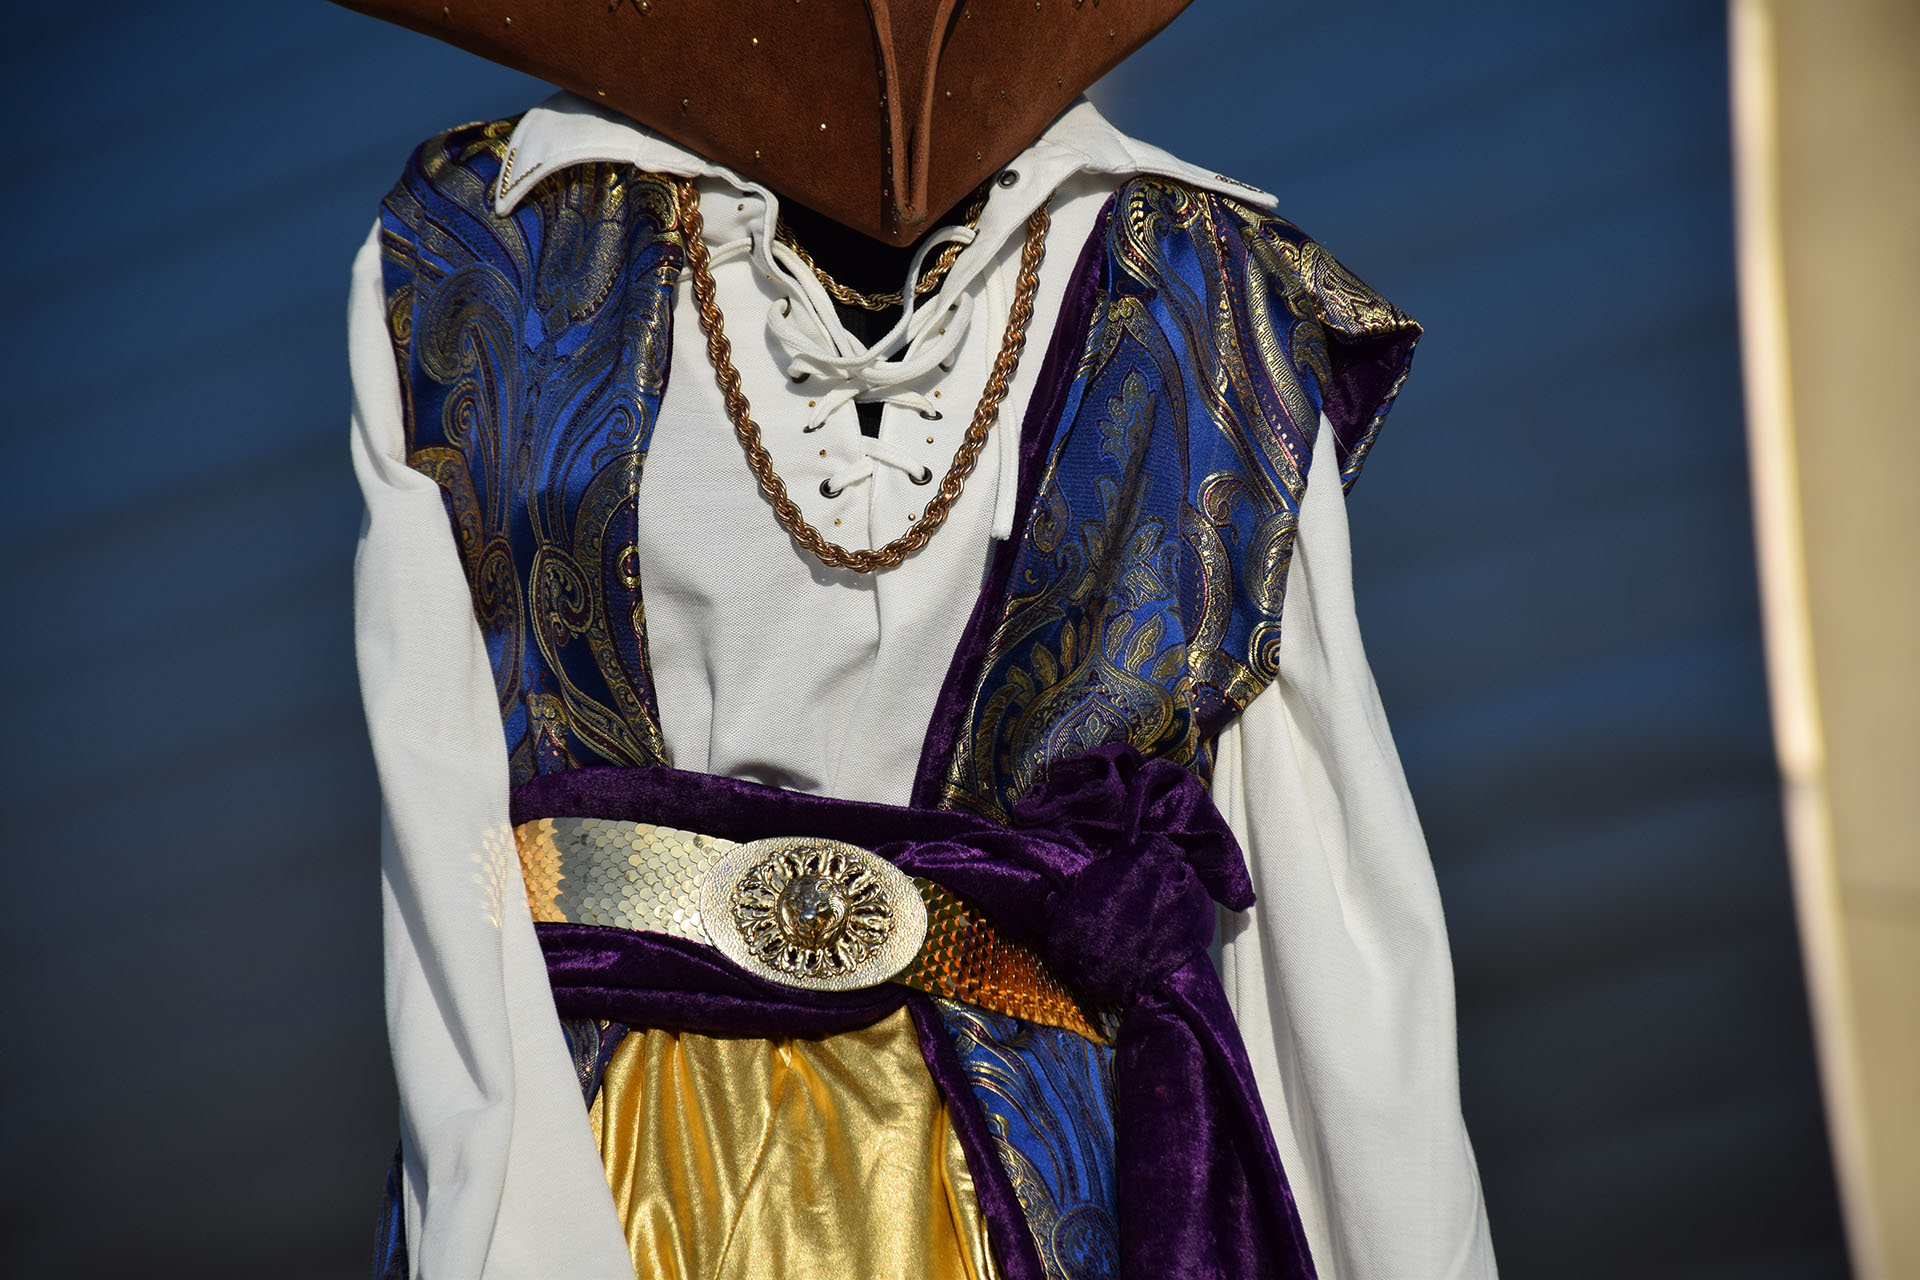 Pirate costume detail